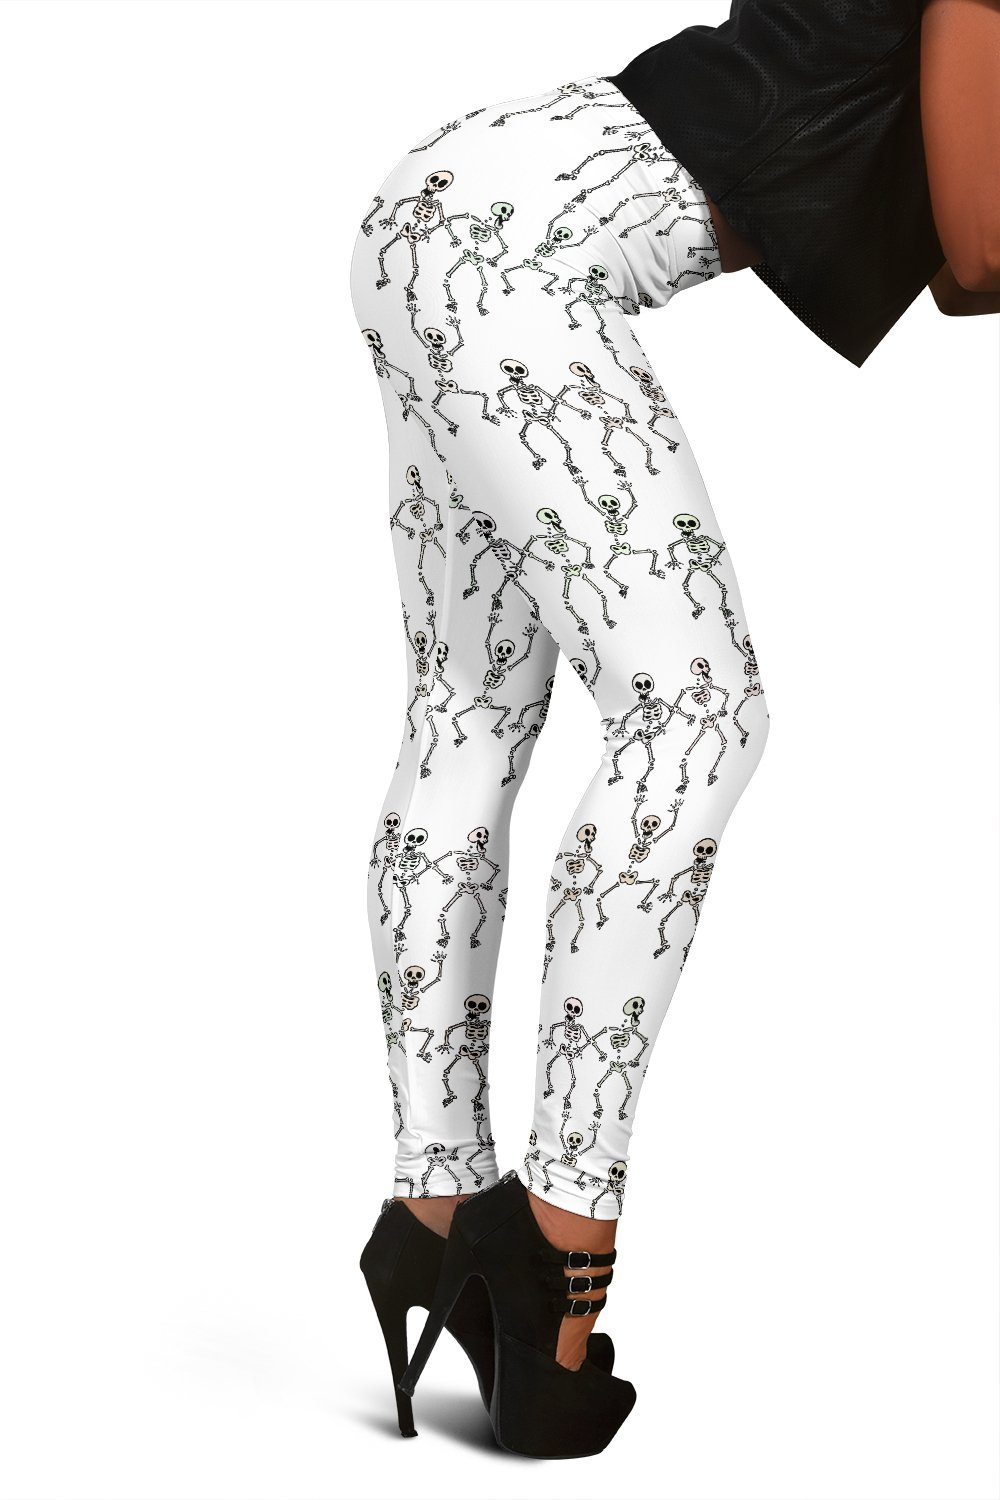 Dancing Skeletons Women's Leggings